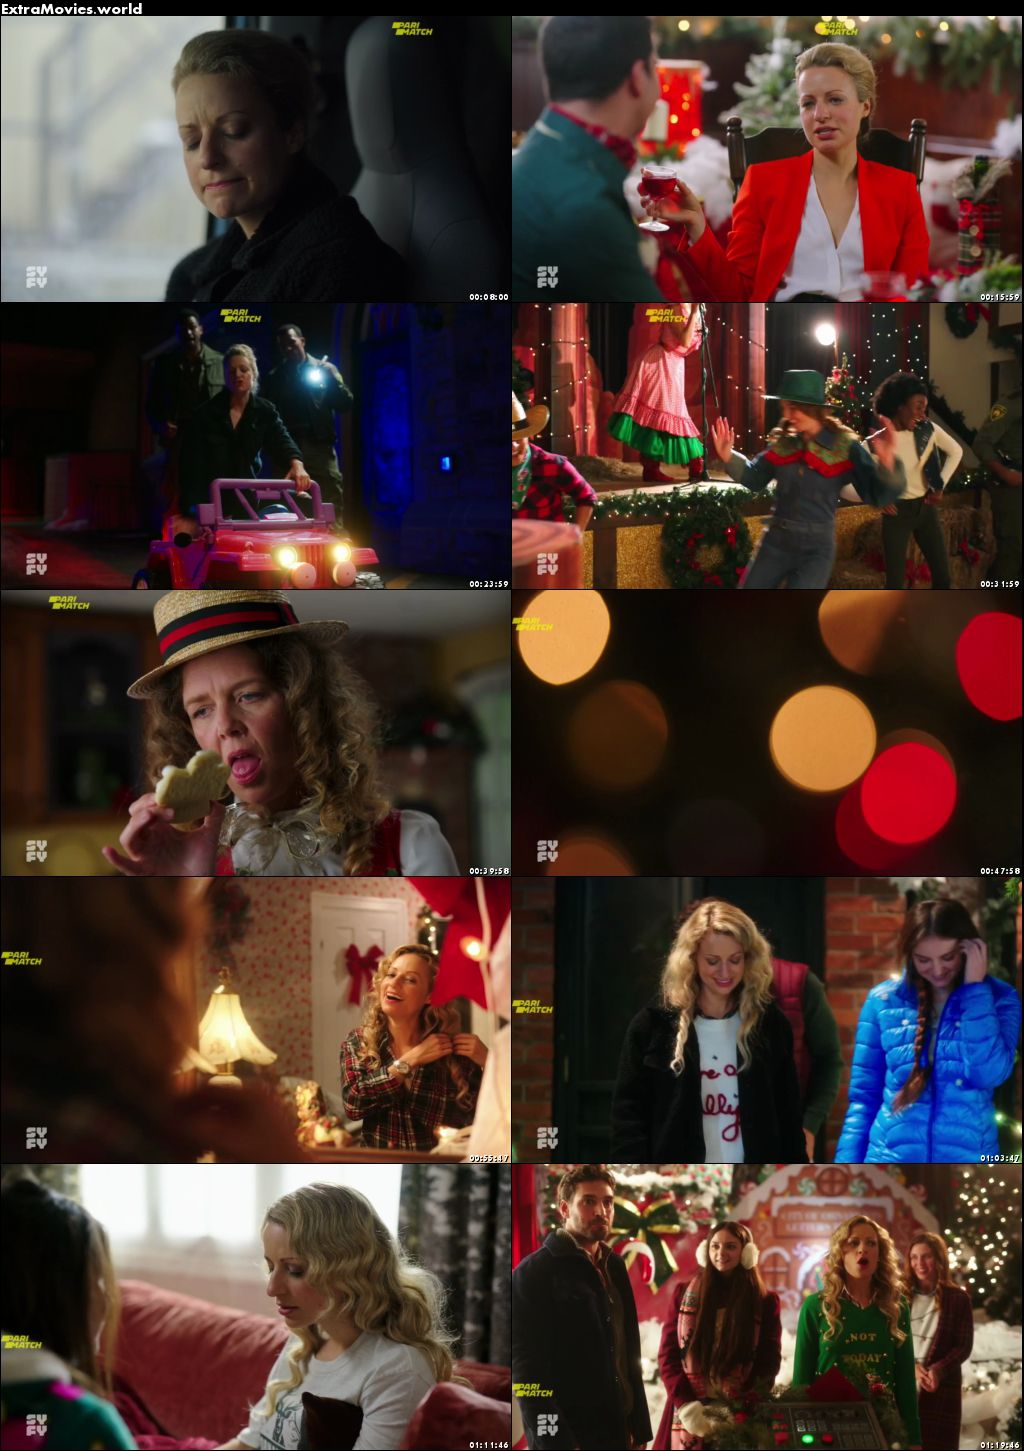 Letters to Satan Claus 2020 Dual Audio Hindi [Unofficial Dubbed] 720p HDRip